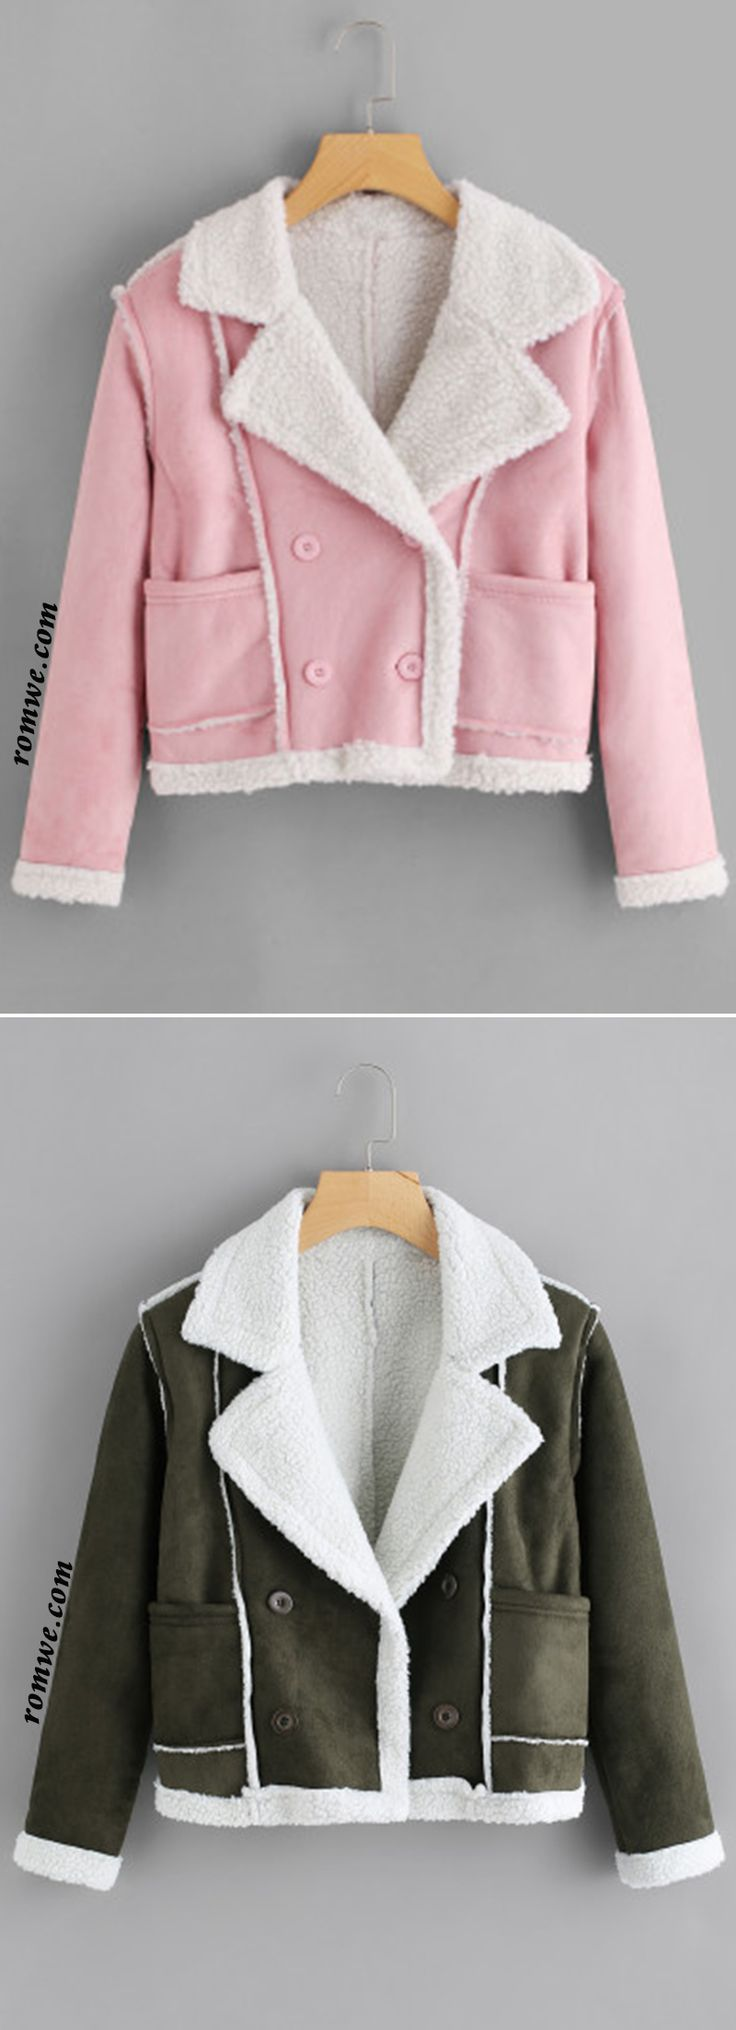 Double Breasted Sherpa Lined Jacket